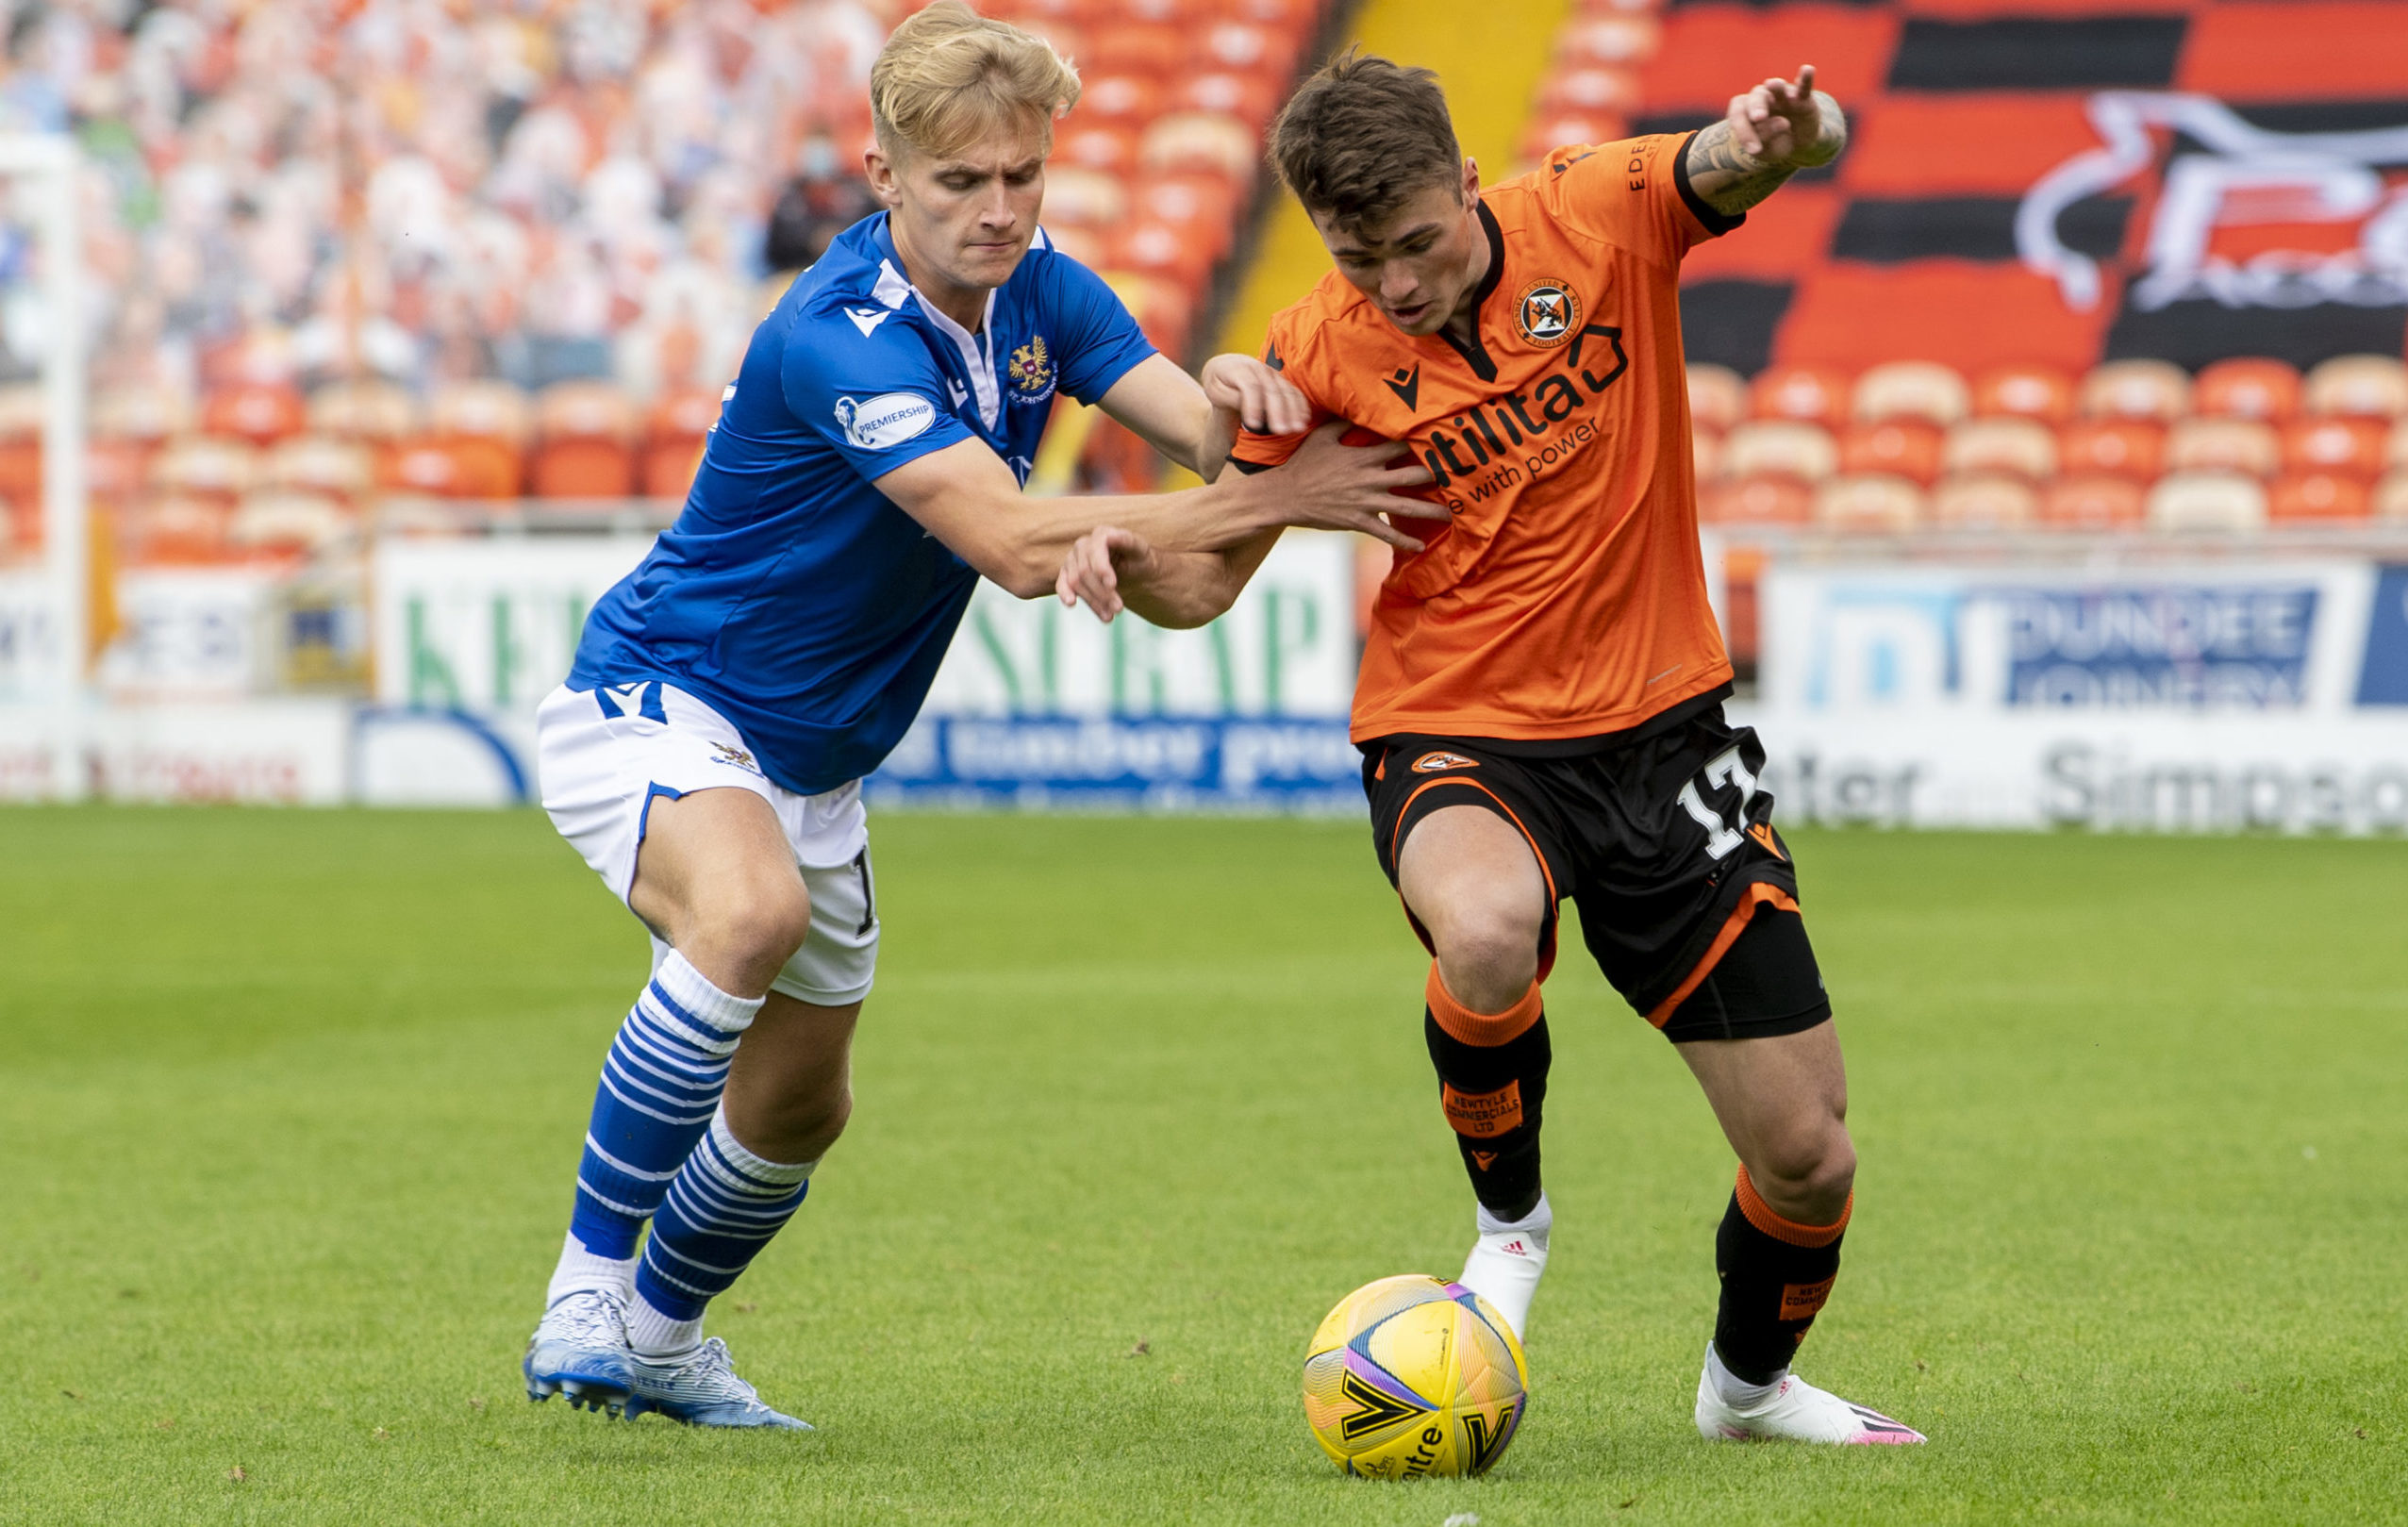 Jamie Robson, right, takes on St Johnstone player Ali McCann.